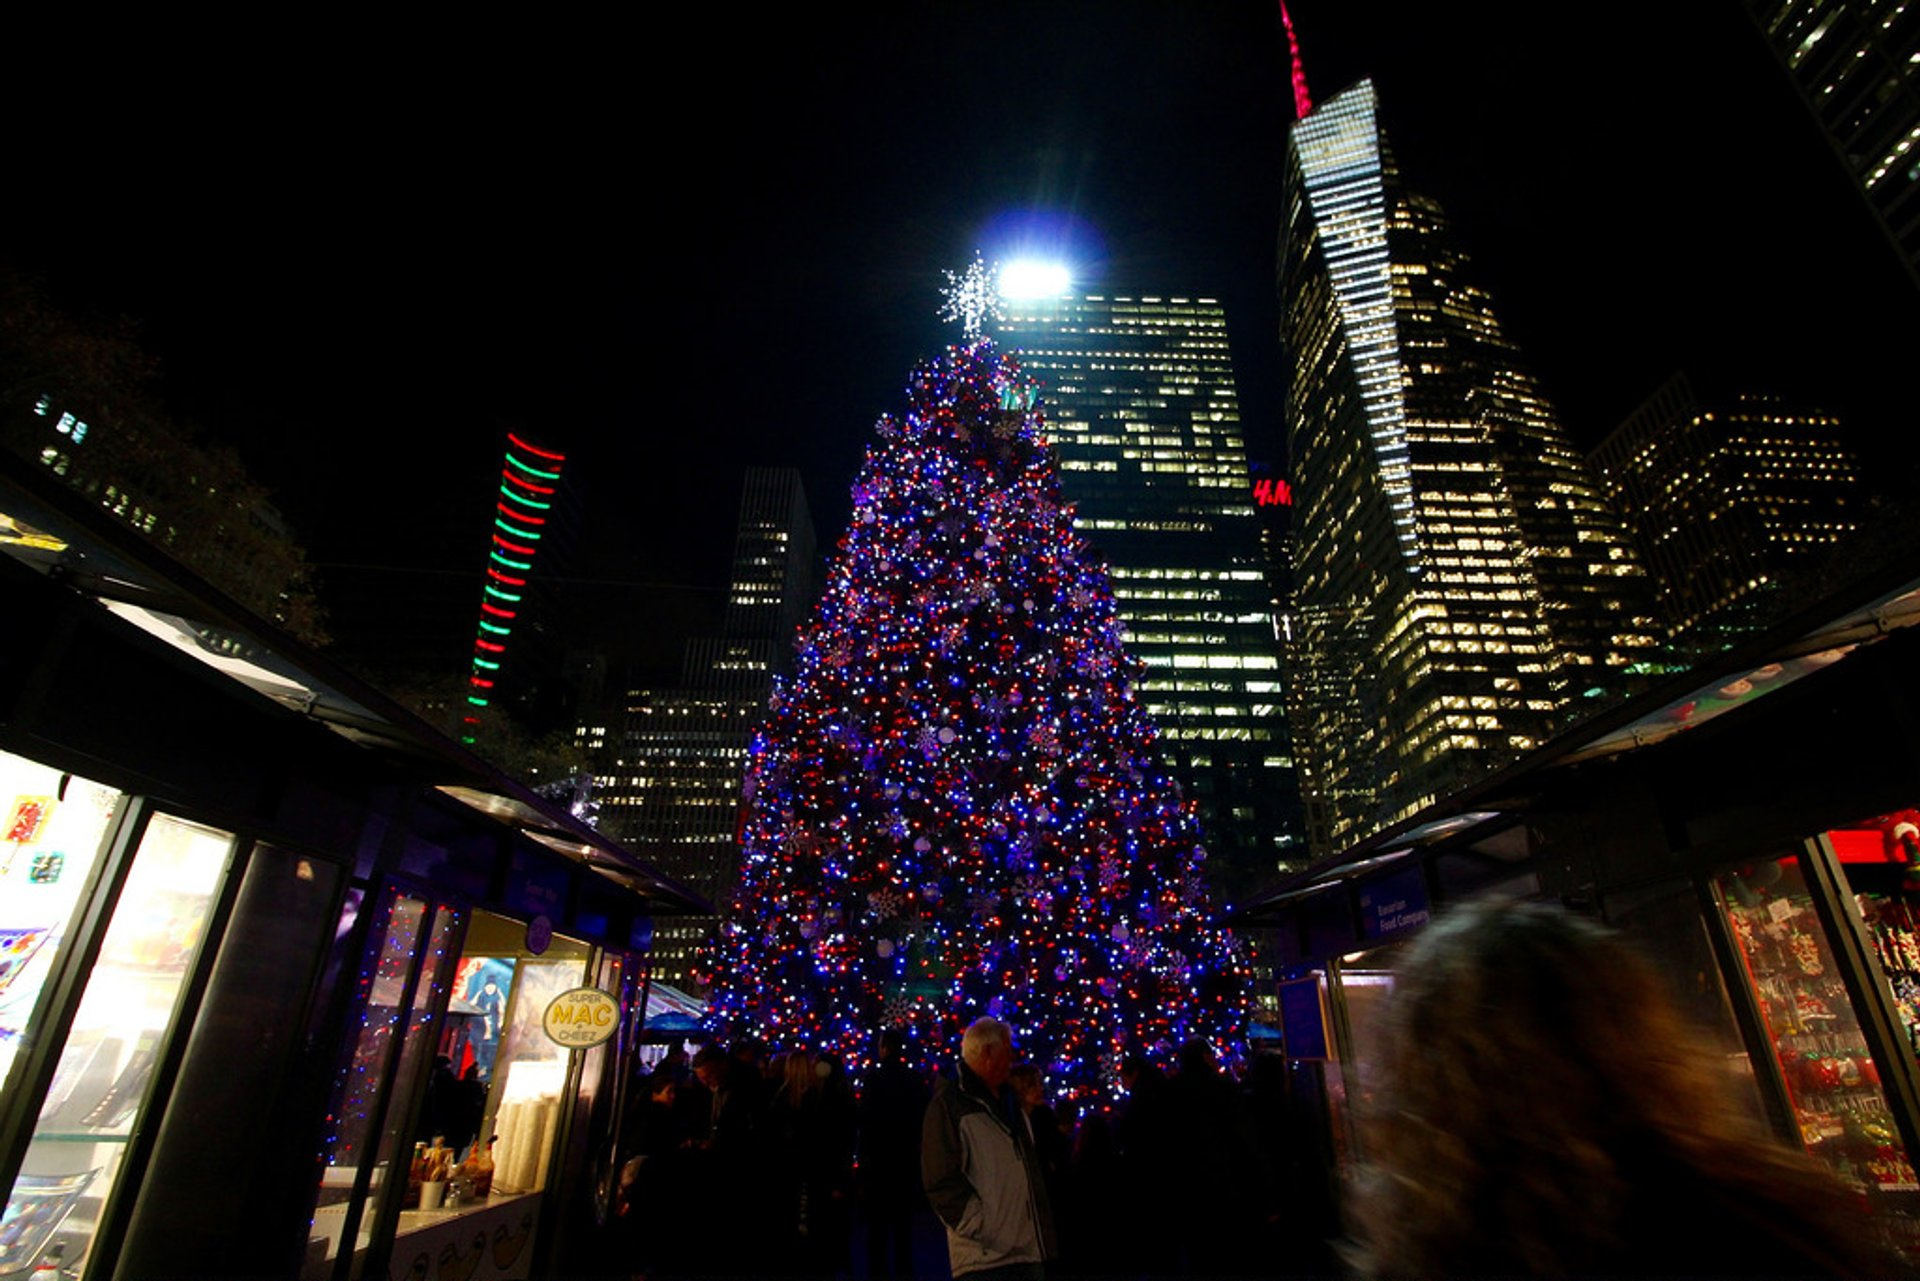 Bank of America Winter Village at Bryant Park 2020